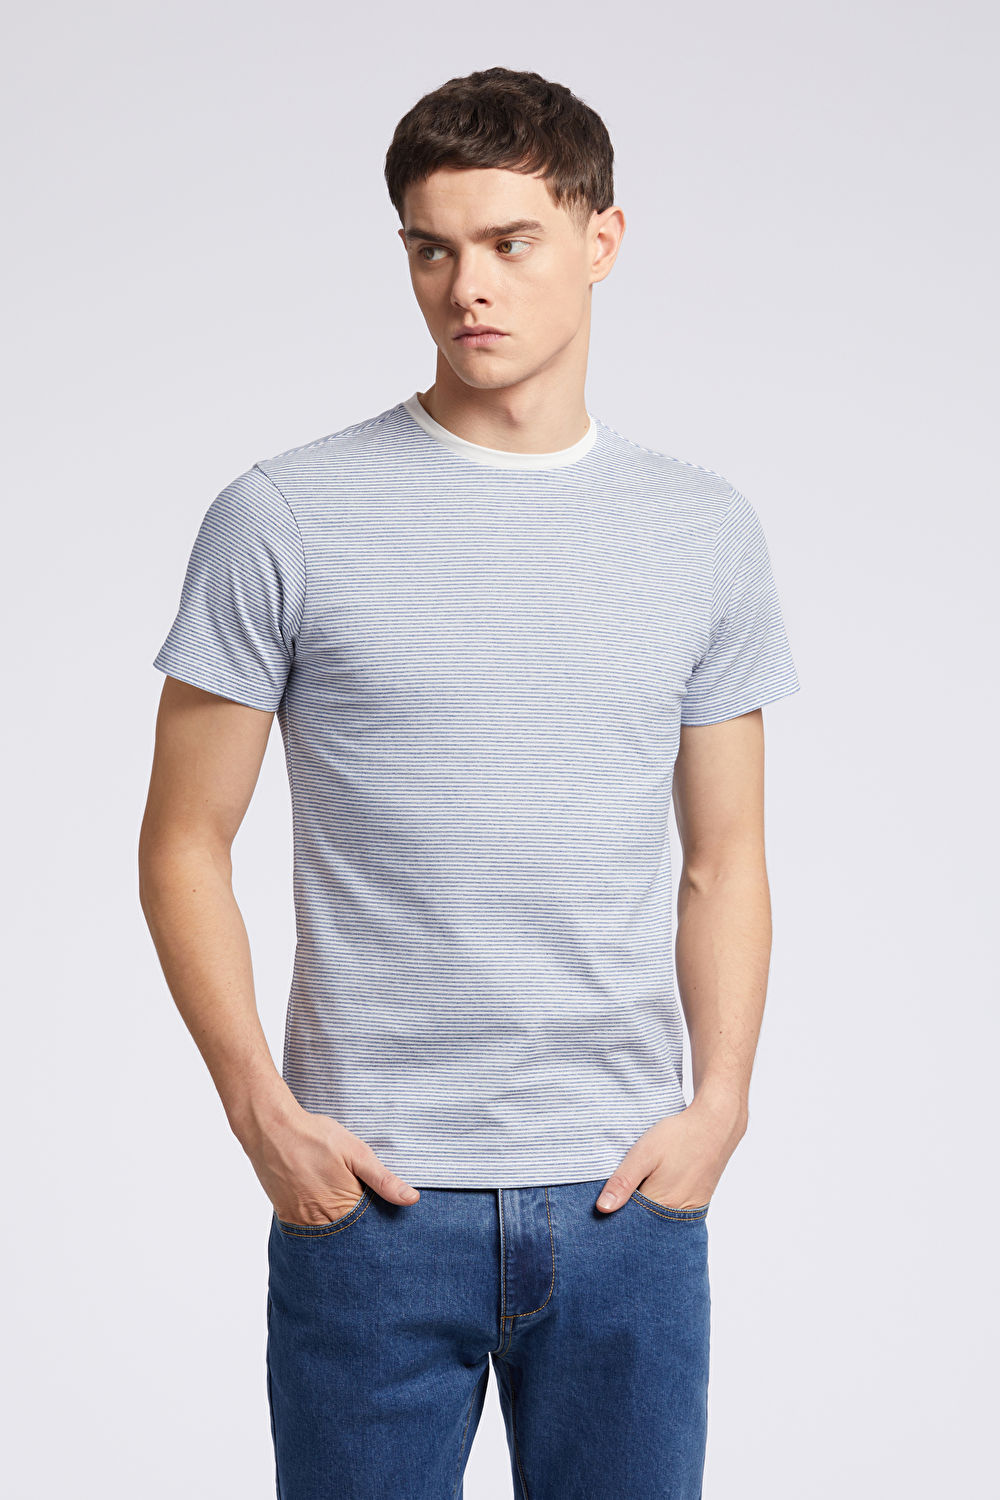 T-SHIRT ANDERS